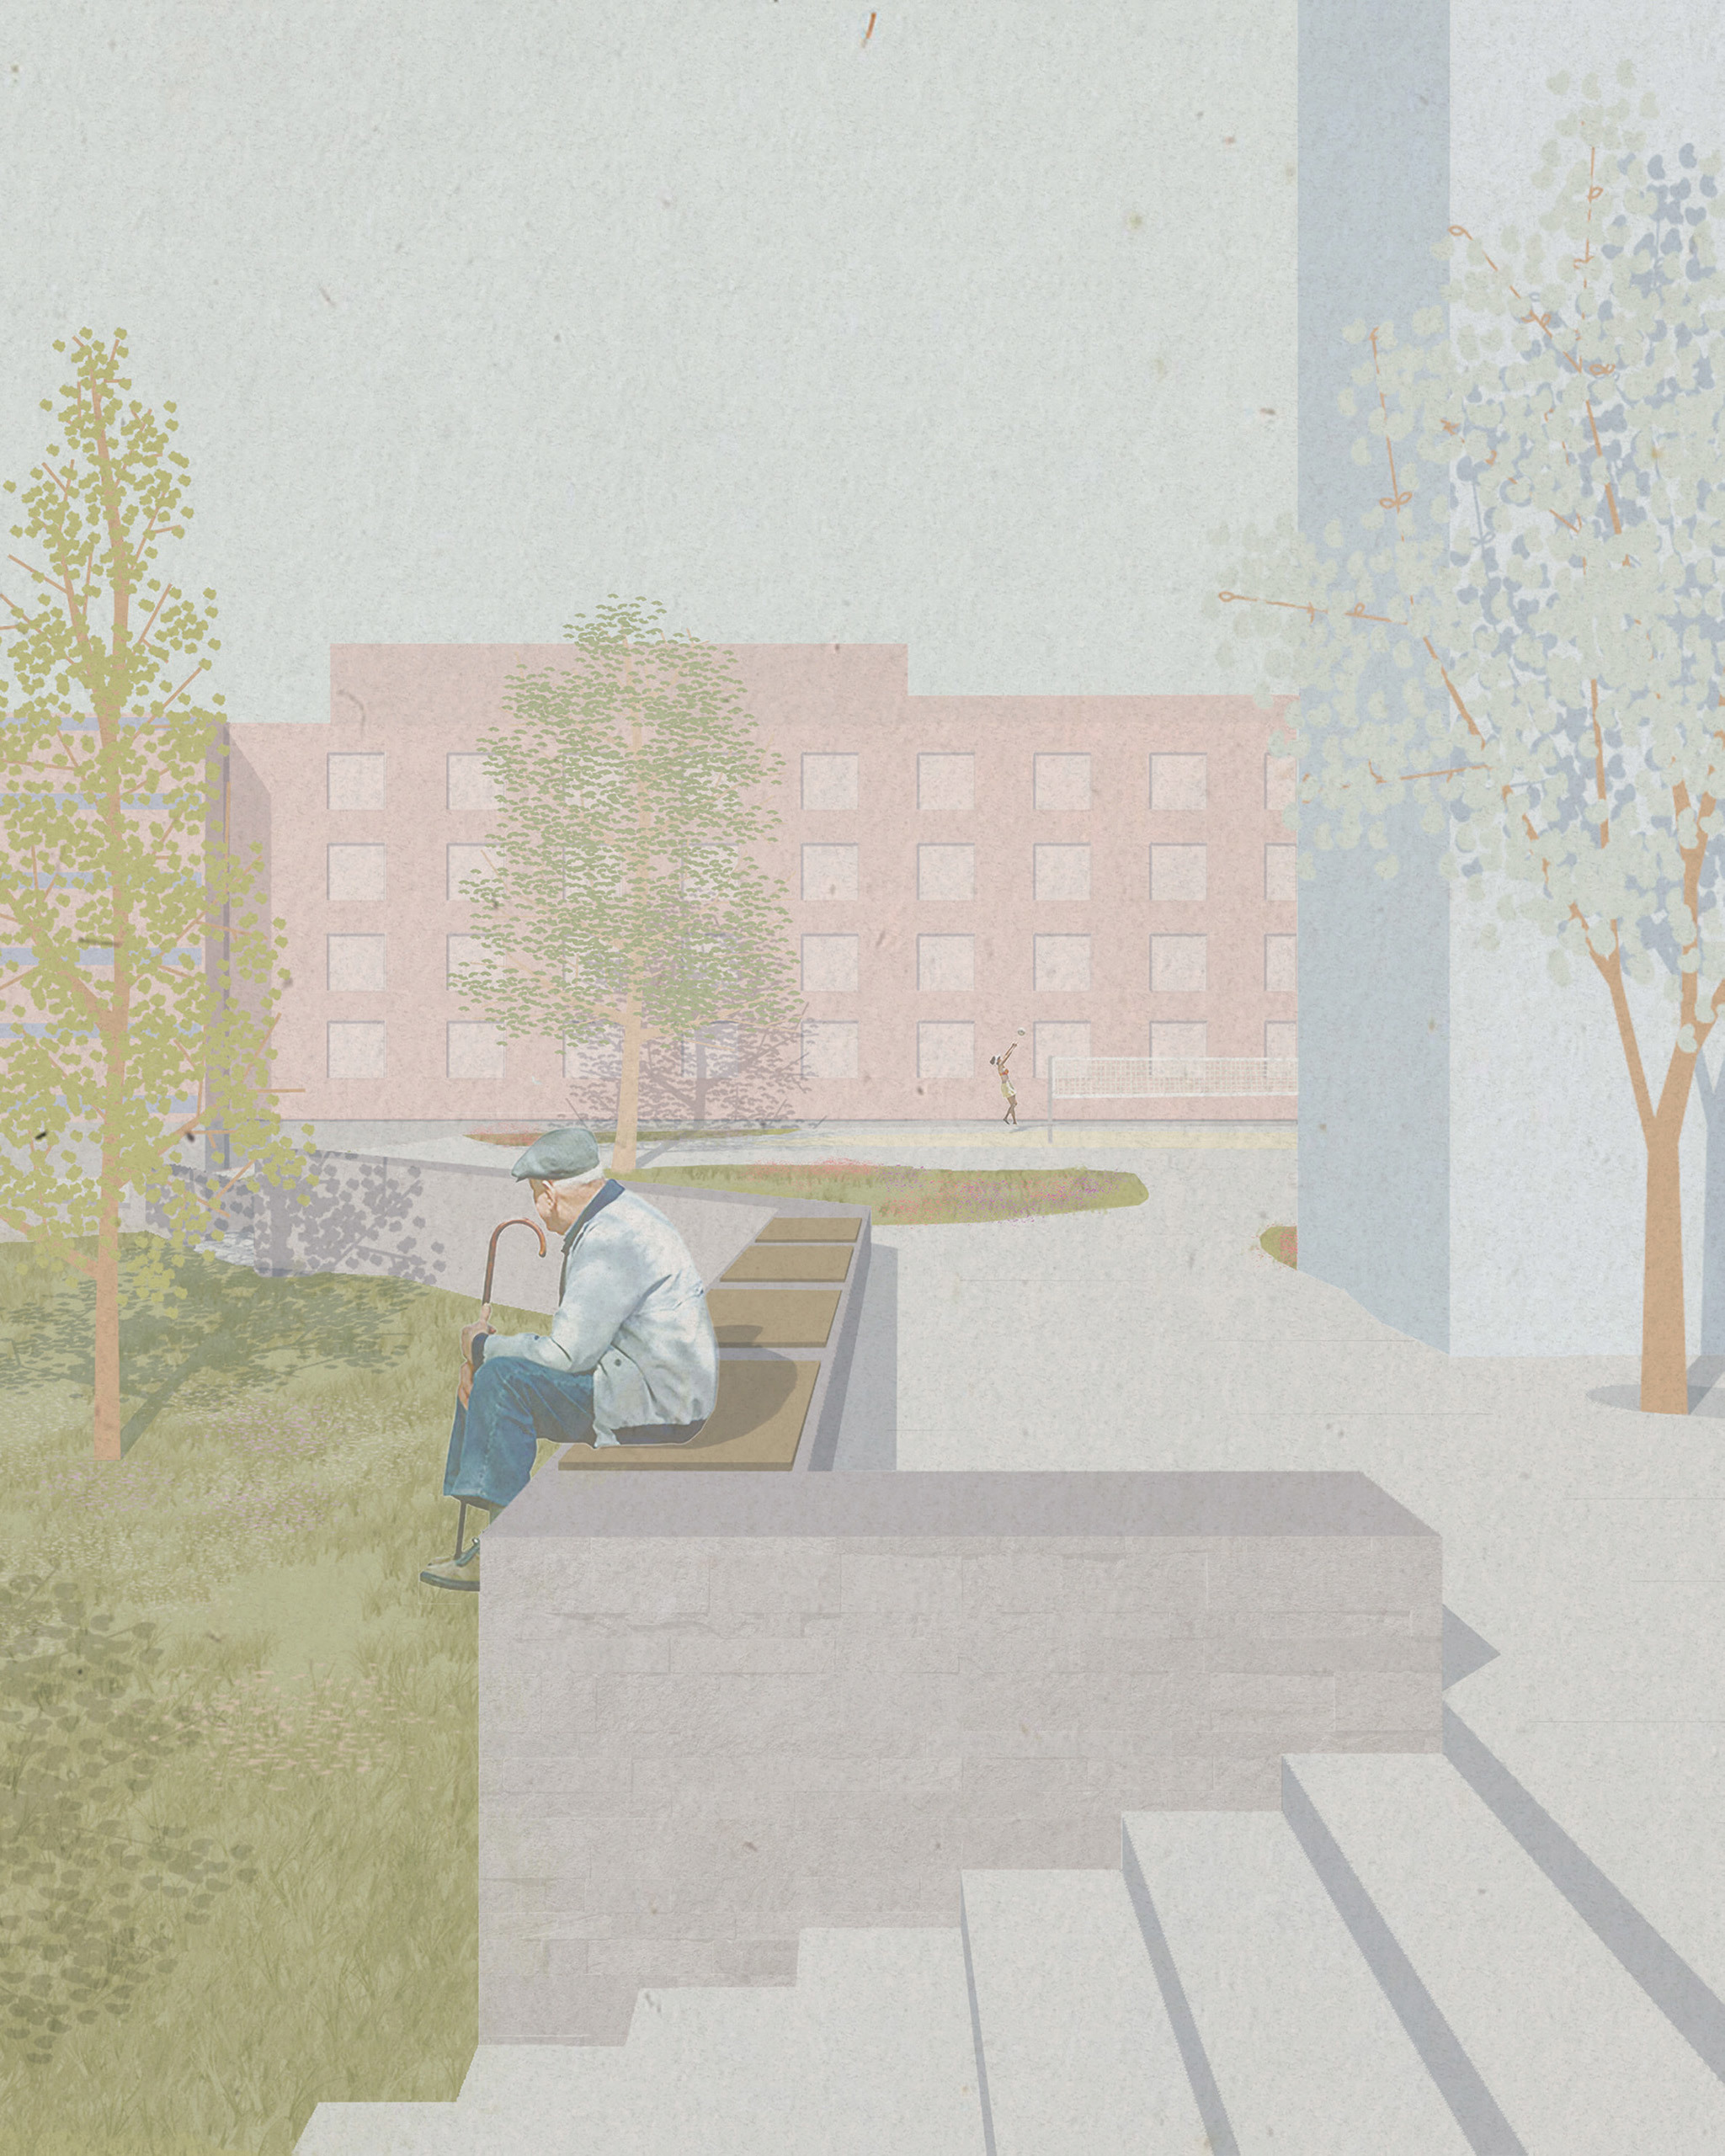 Illustration Promenaden Ntnu